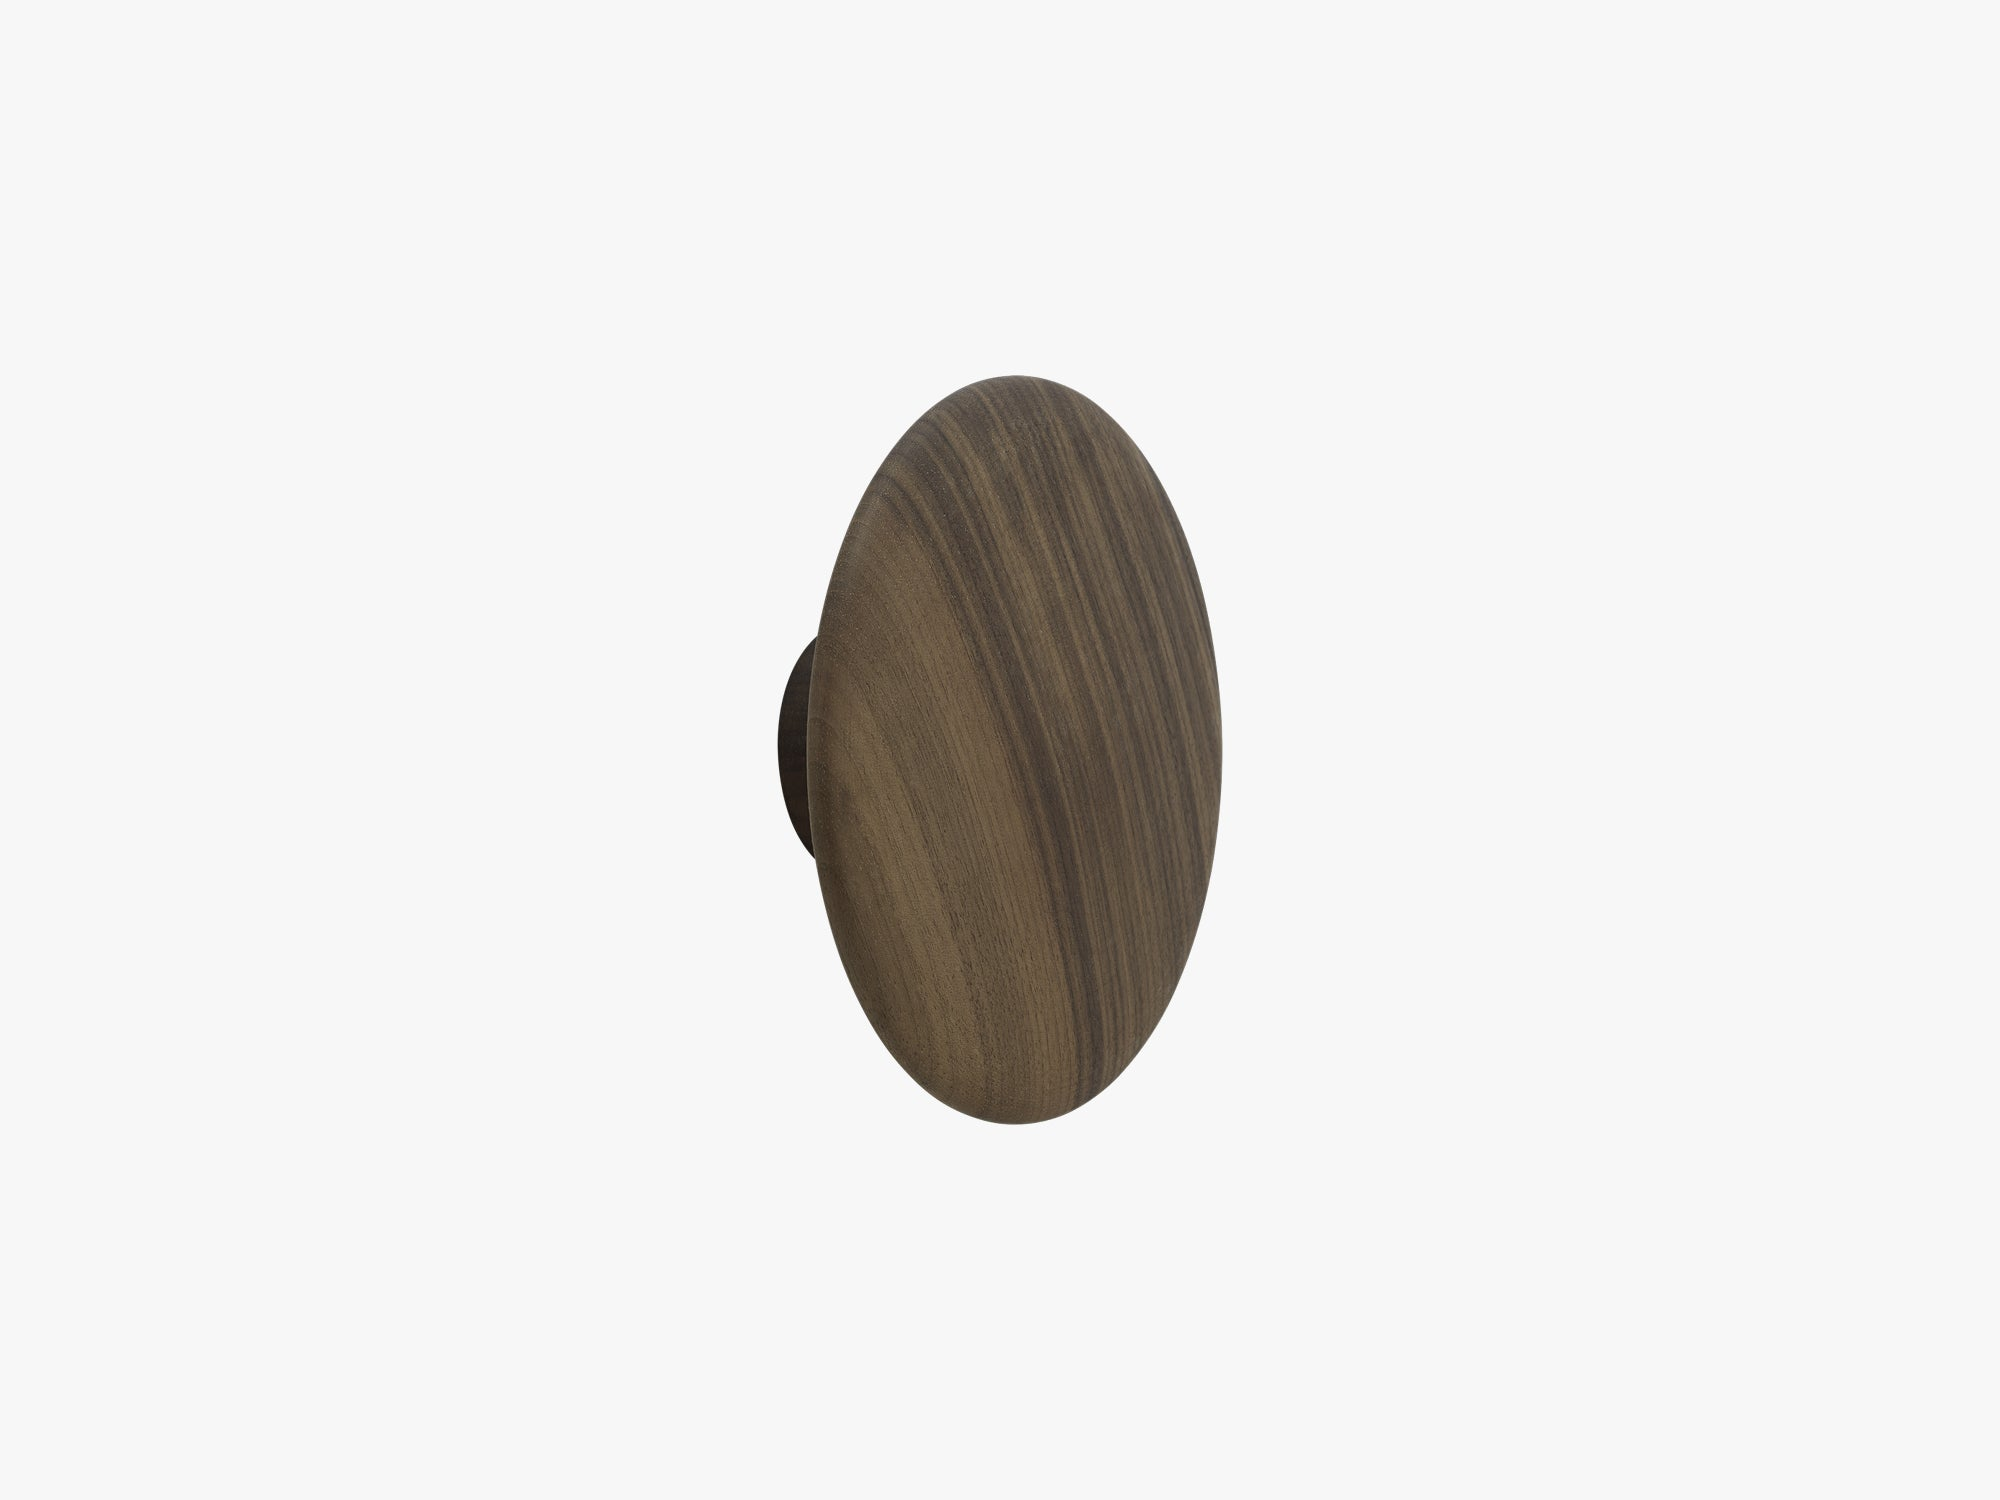 The Dots Coat Hooks - Large, Walnut fra Muuto